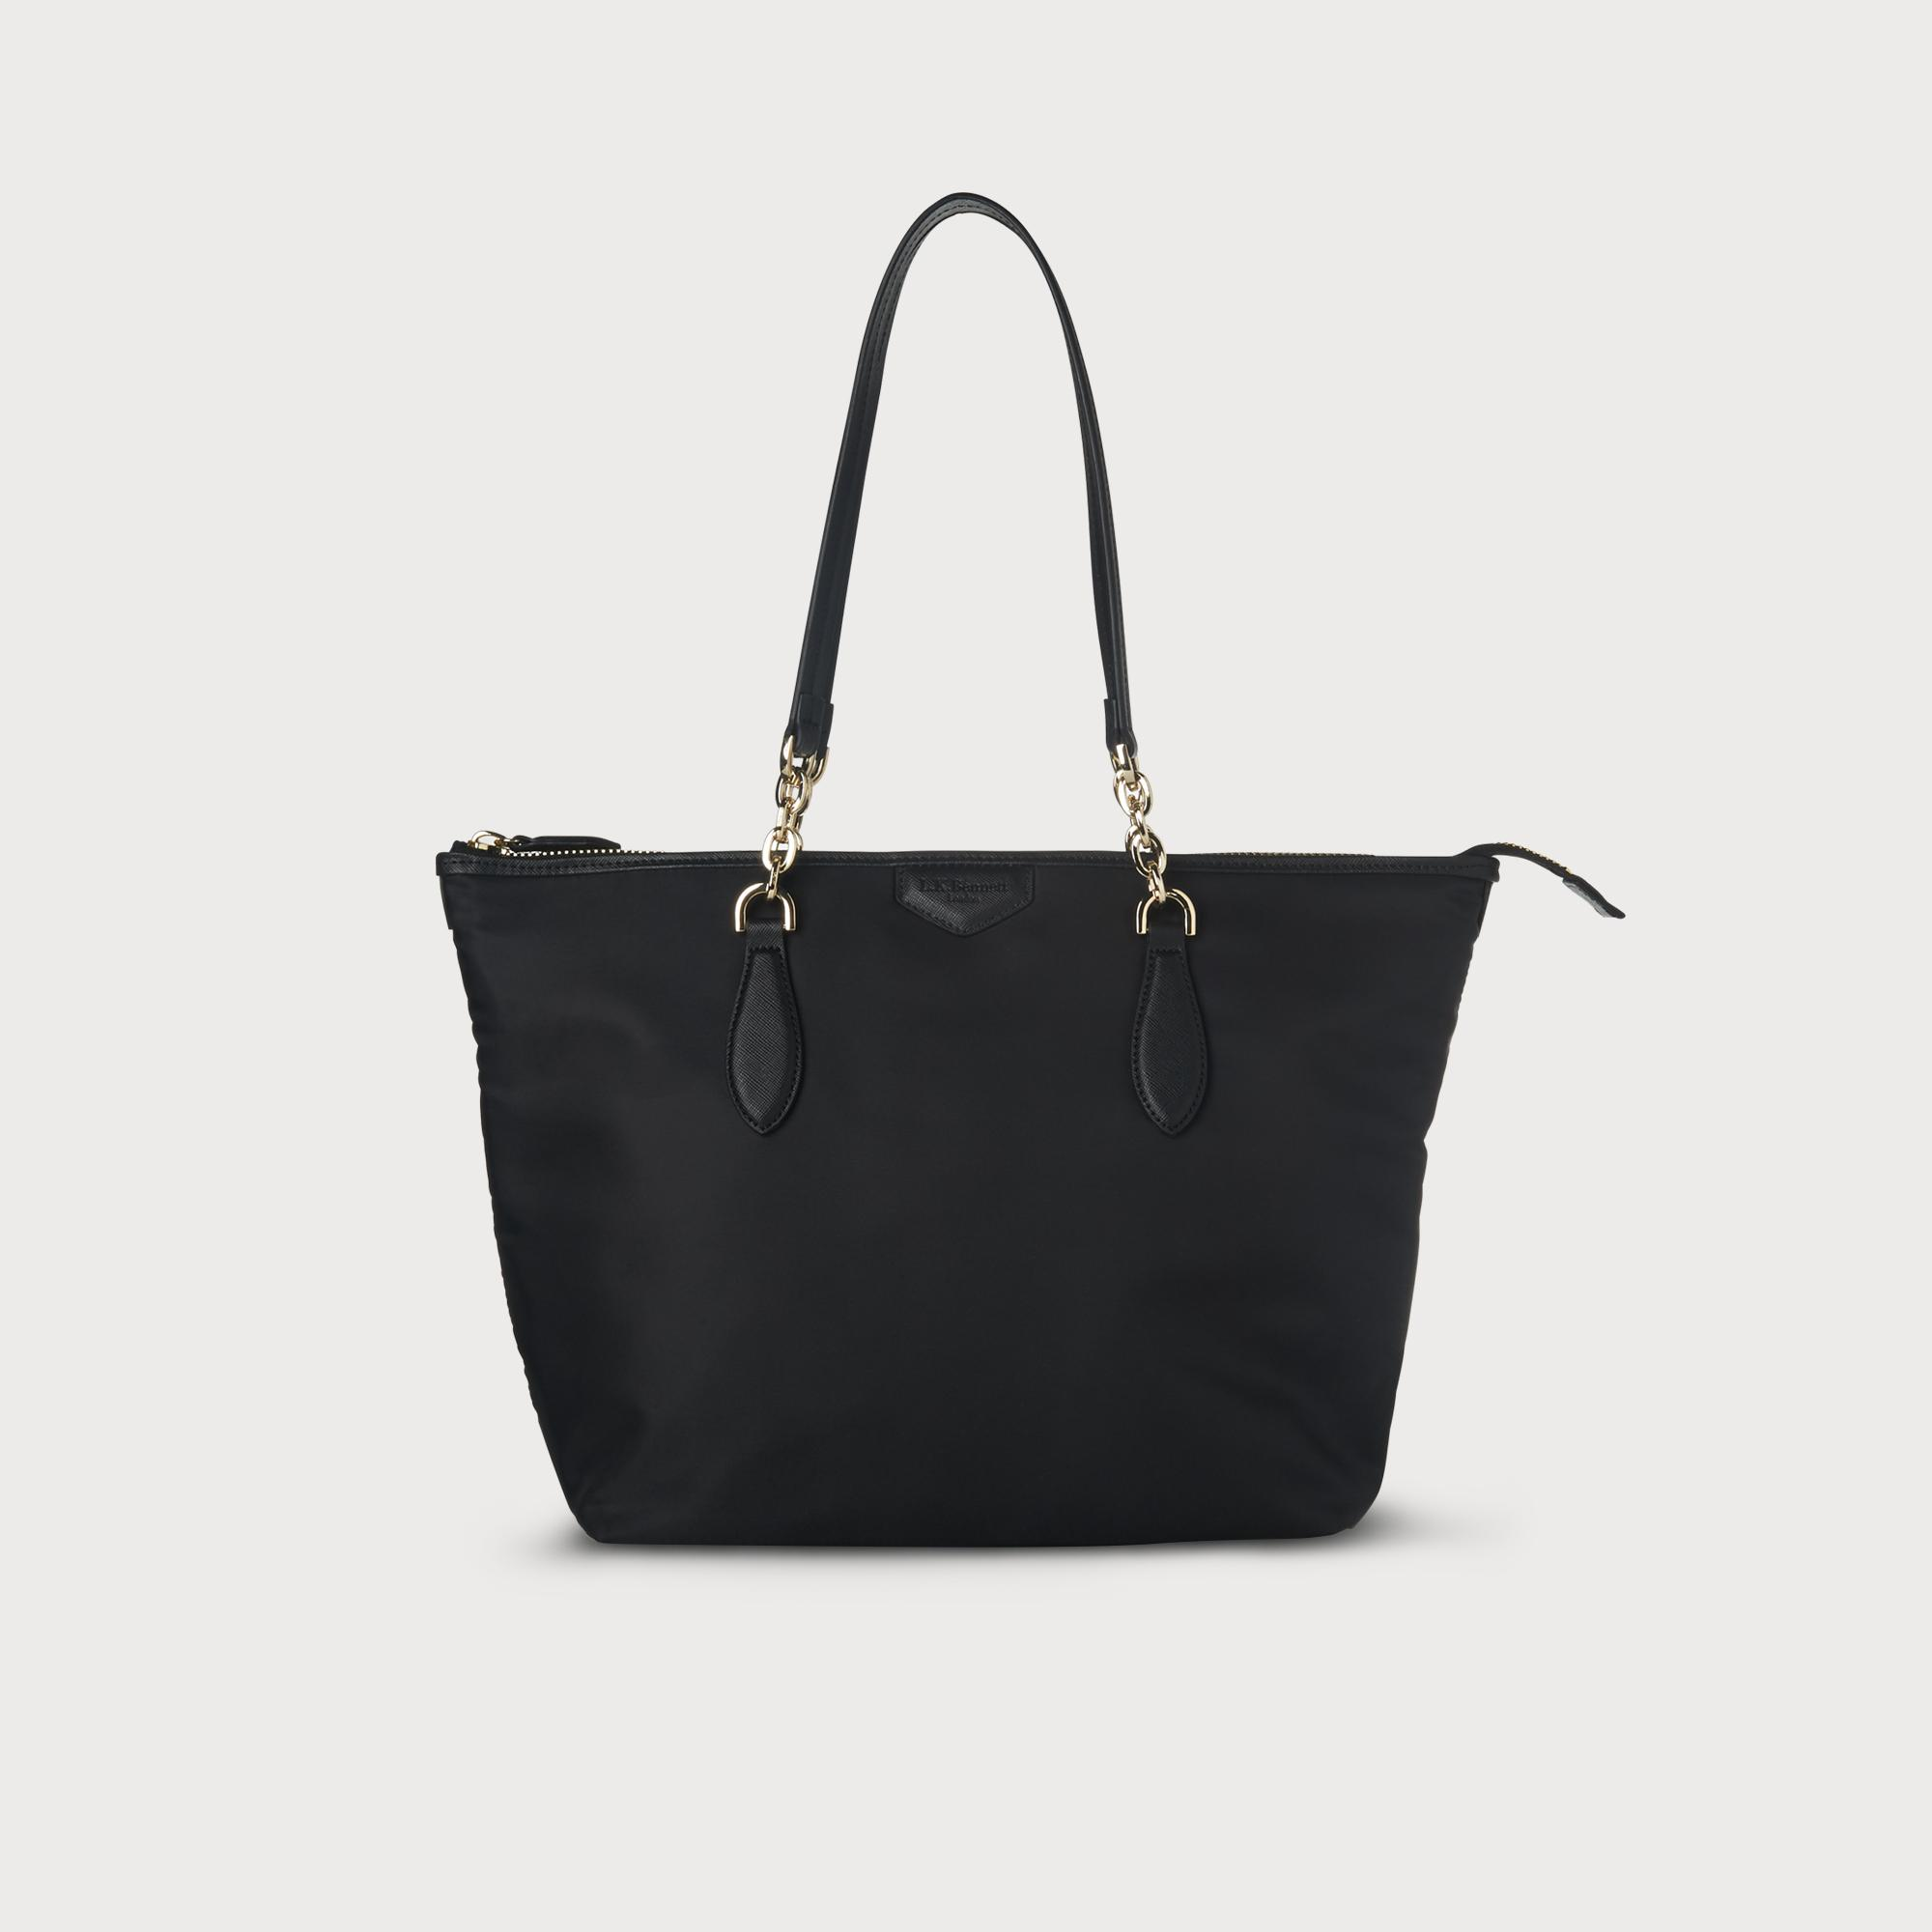 b5272e755f75 Brooke Black Tote Bag | View All | Handbags | Collections | L.K.Bennett,  London